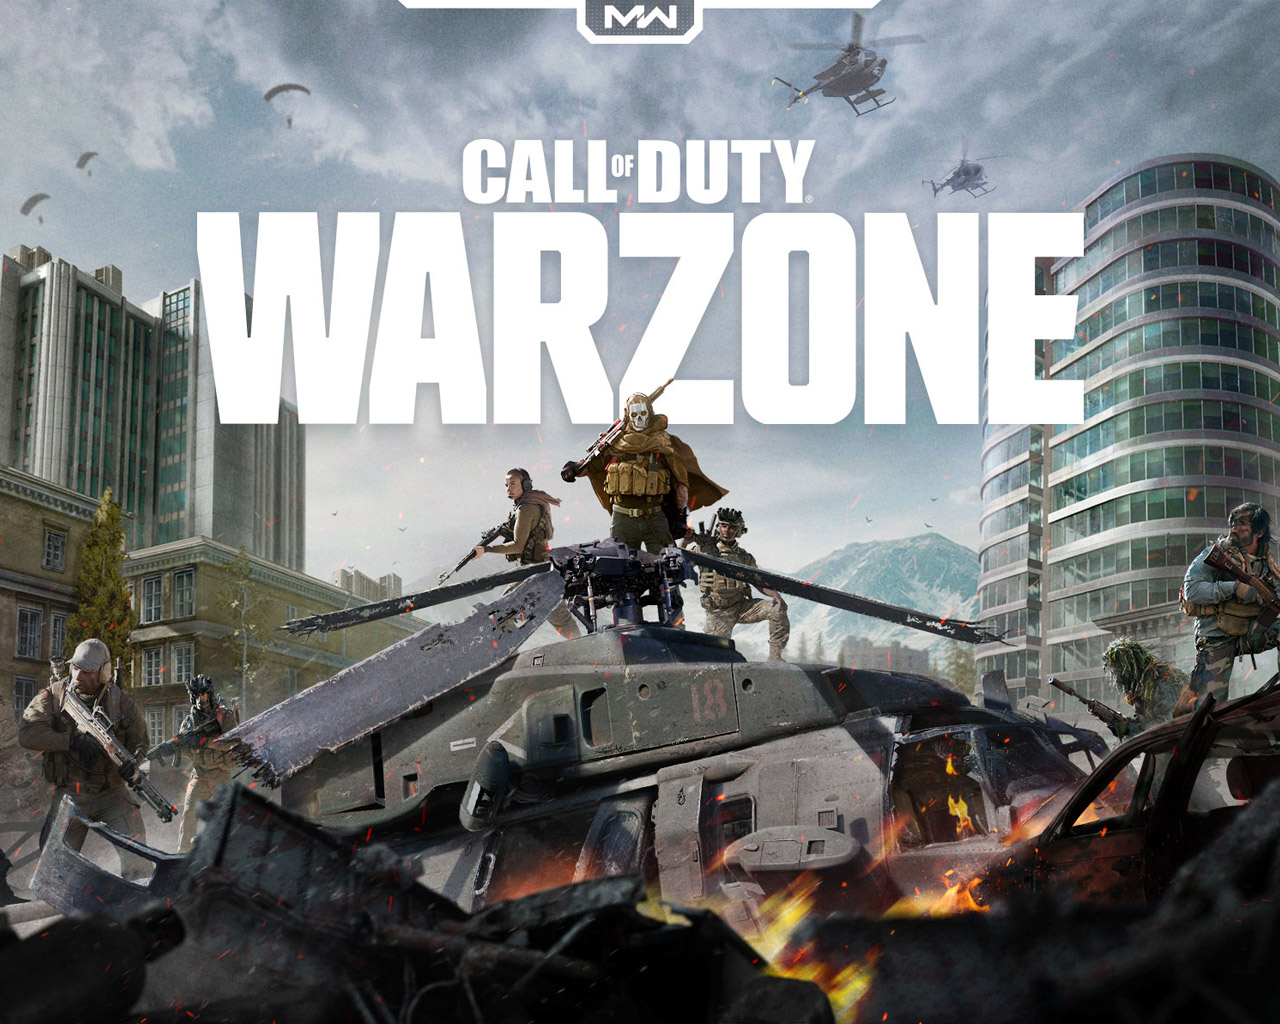 Free Call of Duty: Warzone Wallpaper in 1280x1024